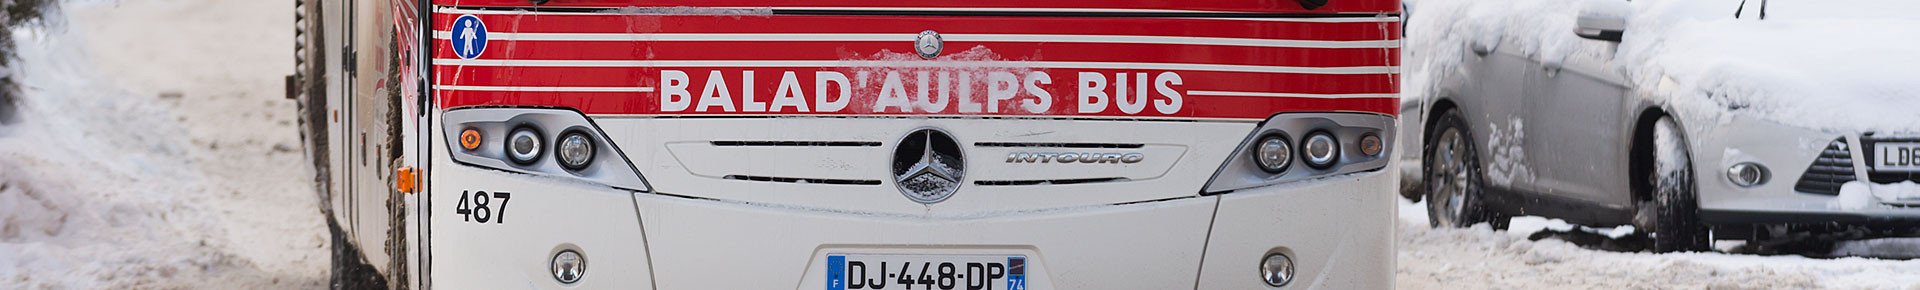 Balad'Aulps Bus, navette Vallée d'Aulps hiver